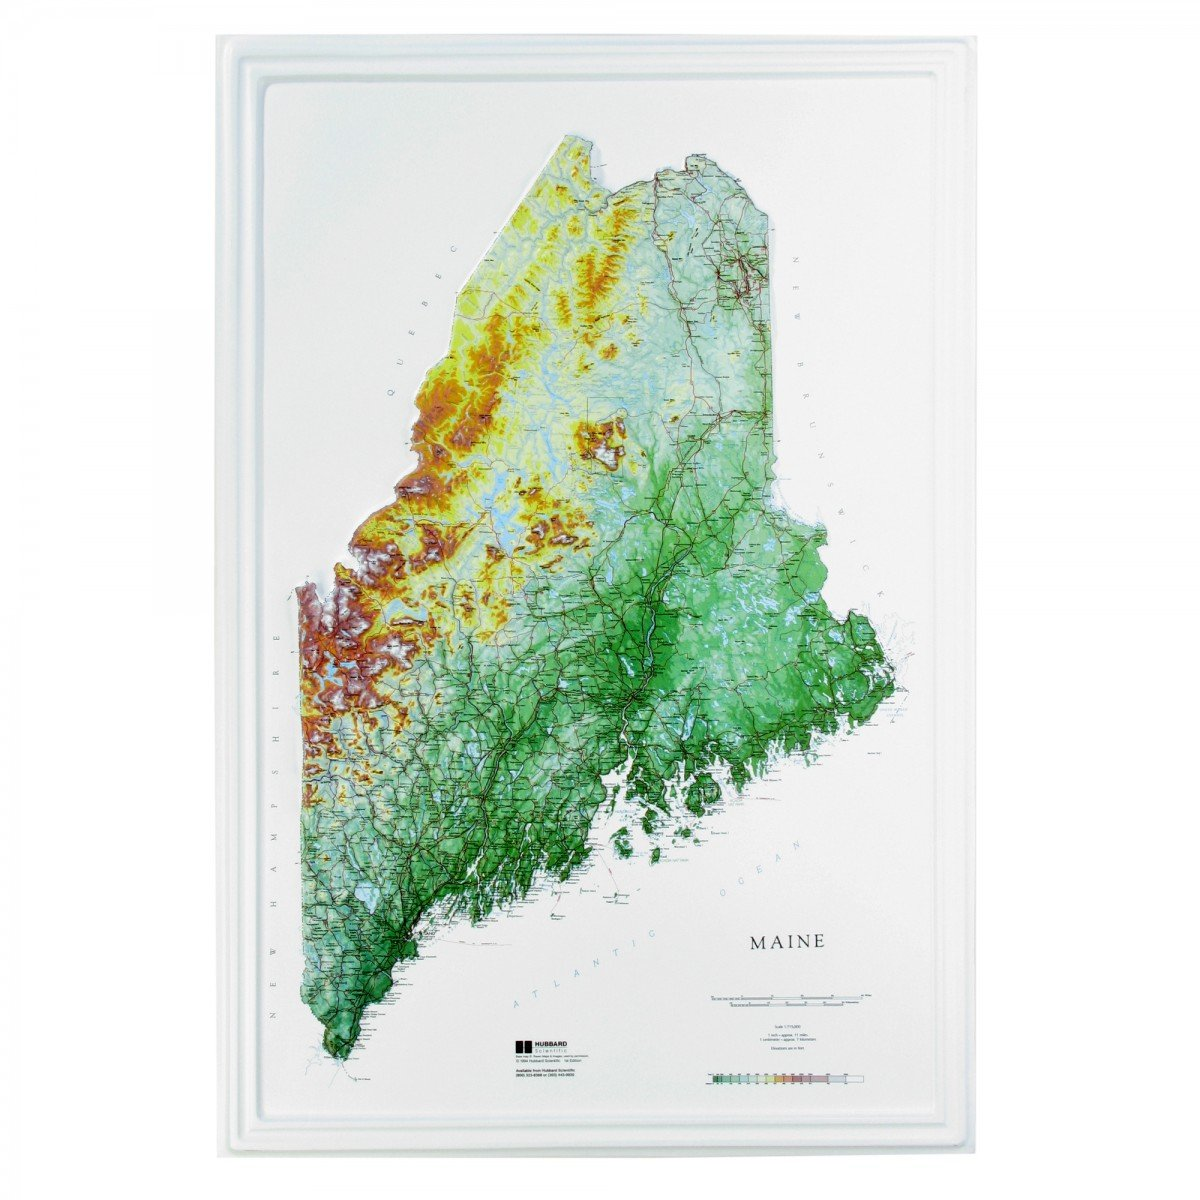 Hubbard Scientific Raised Relief Map 955 Maine State Map by American Educational Products